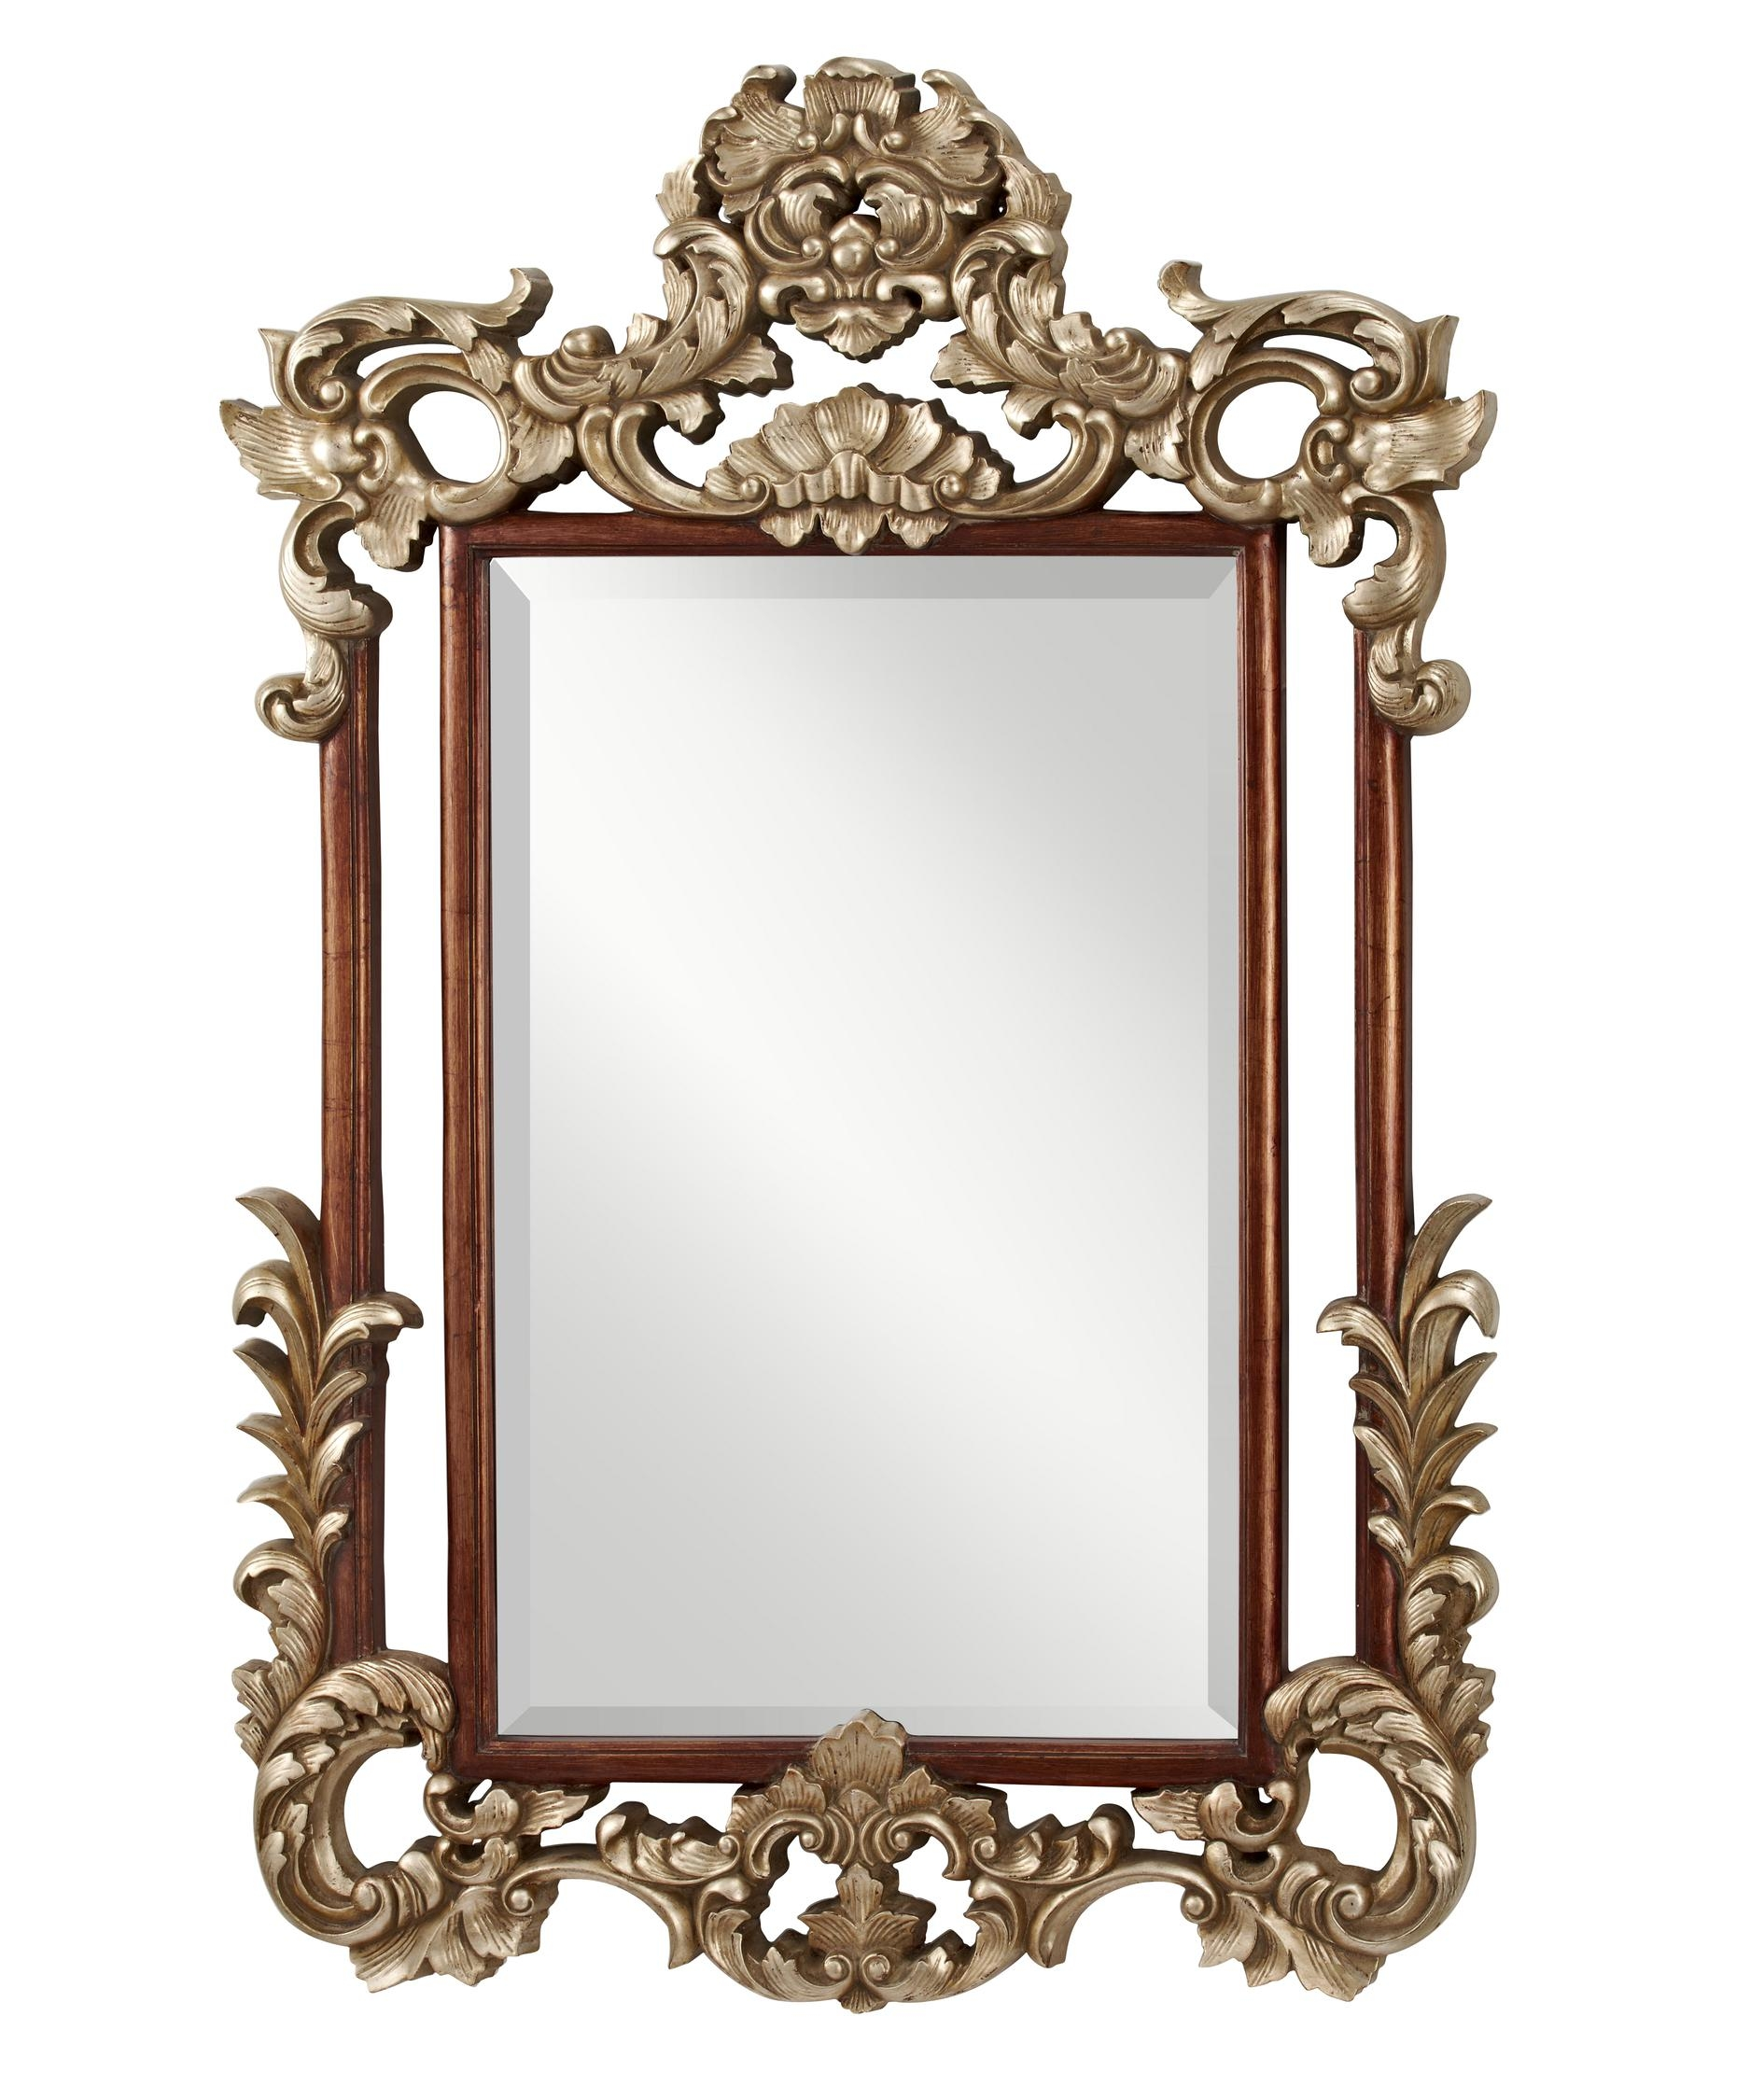 Murray Feiss Mr1128 Suzanne Wall Mirror Capitol Lighting 1 With Old Style Mirror (View 8 of 15)